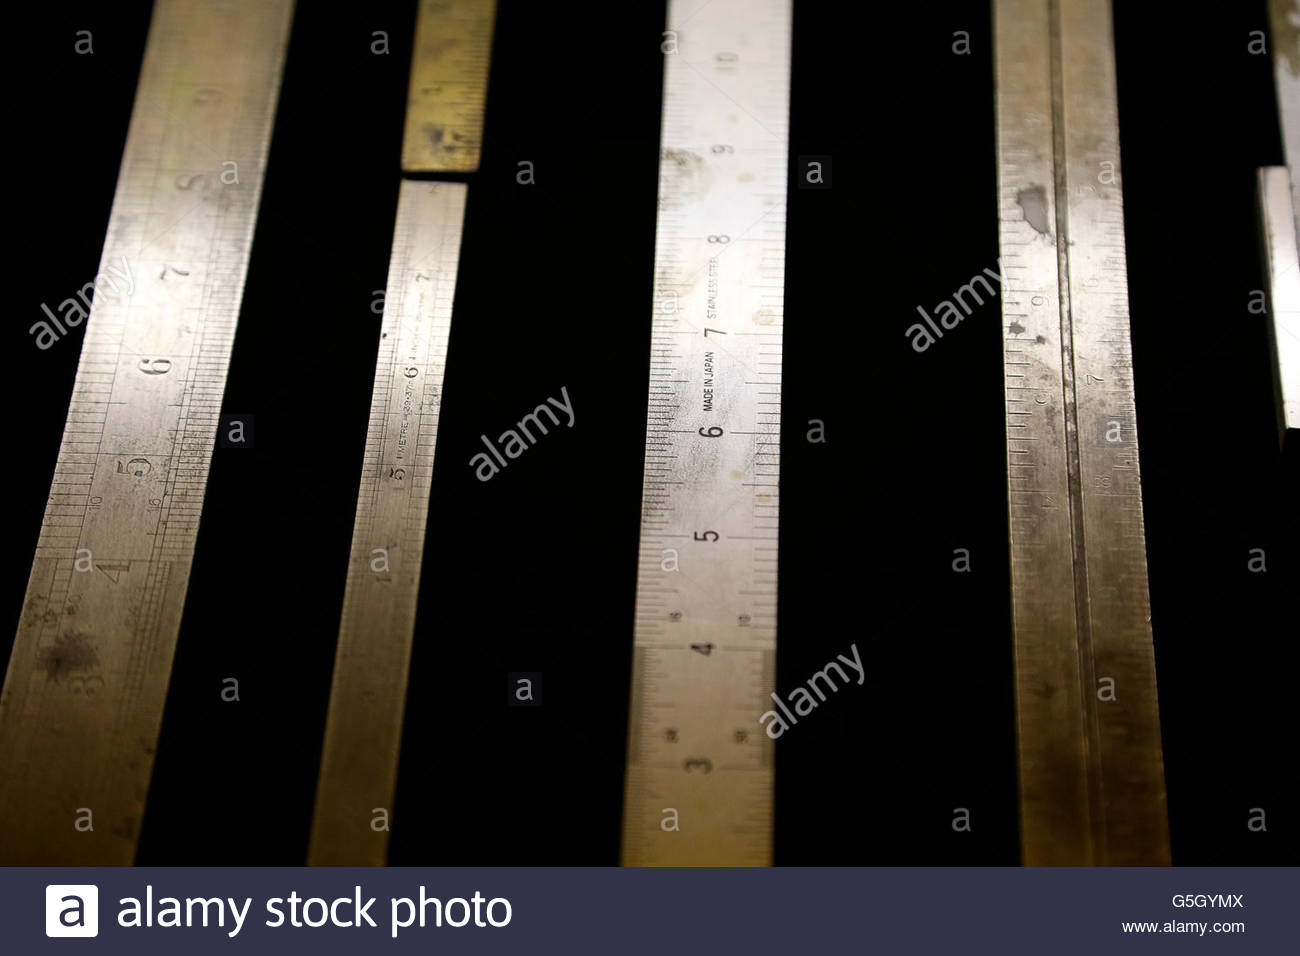 metal Rulers - Stock Image